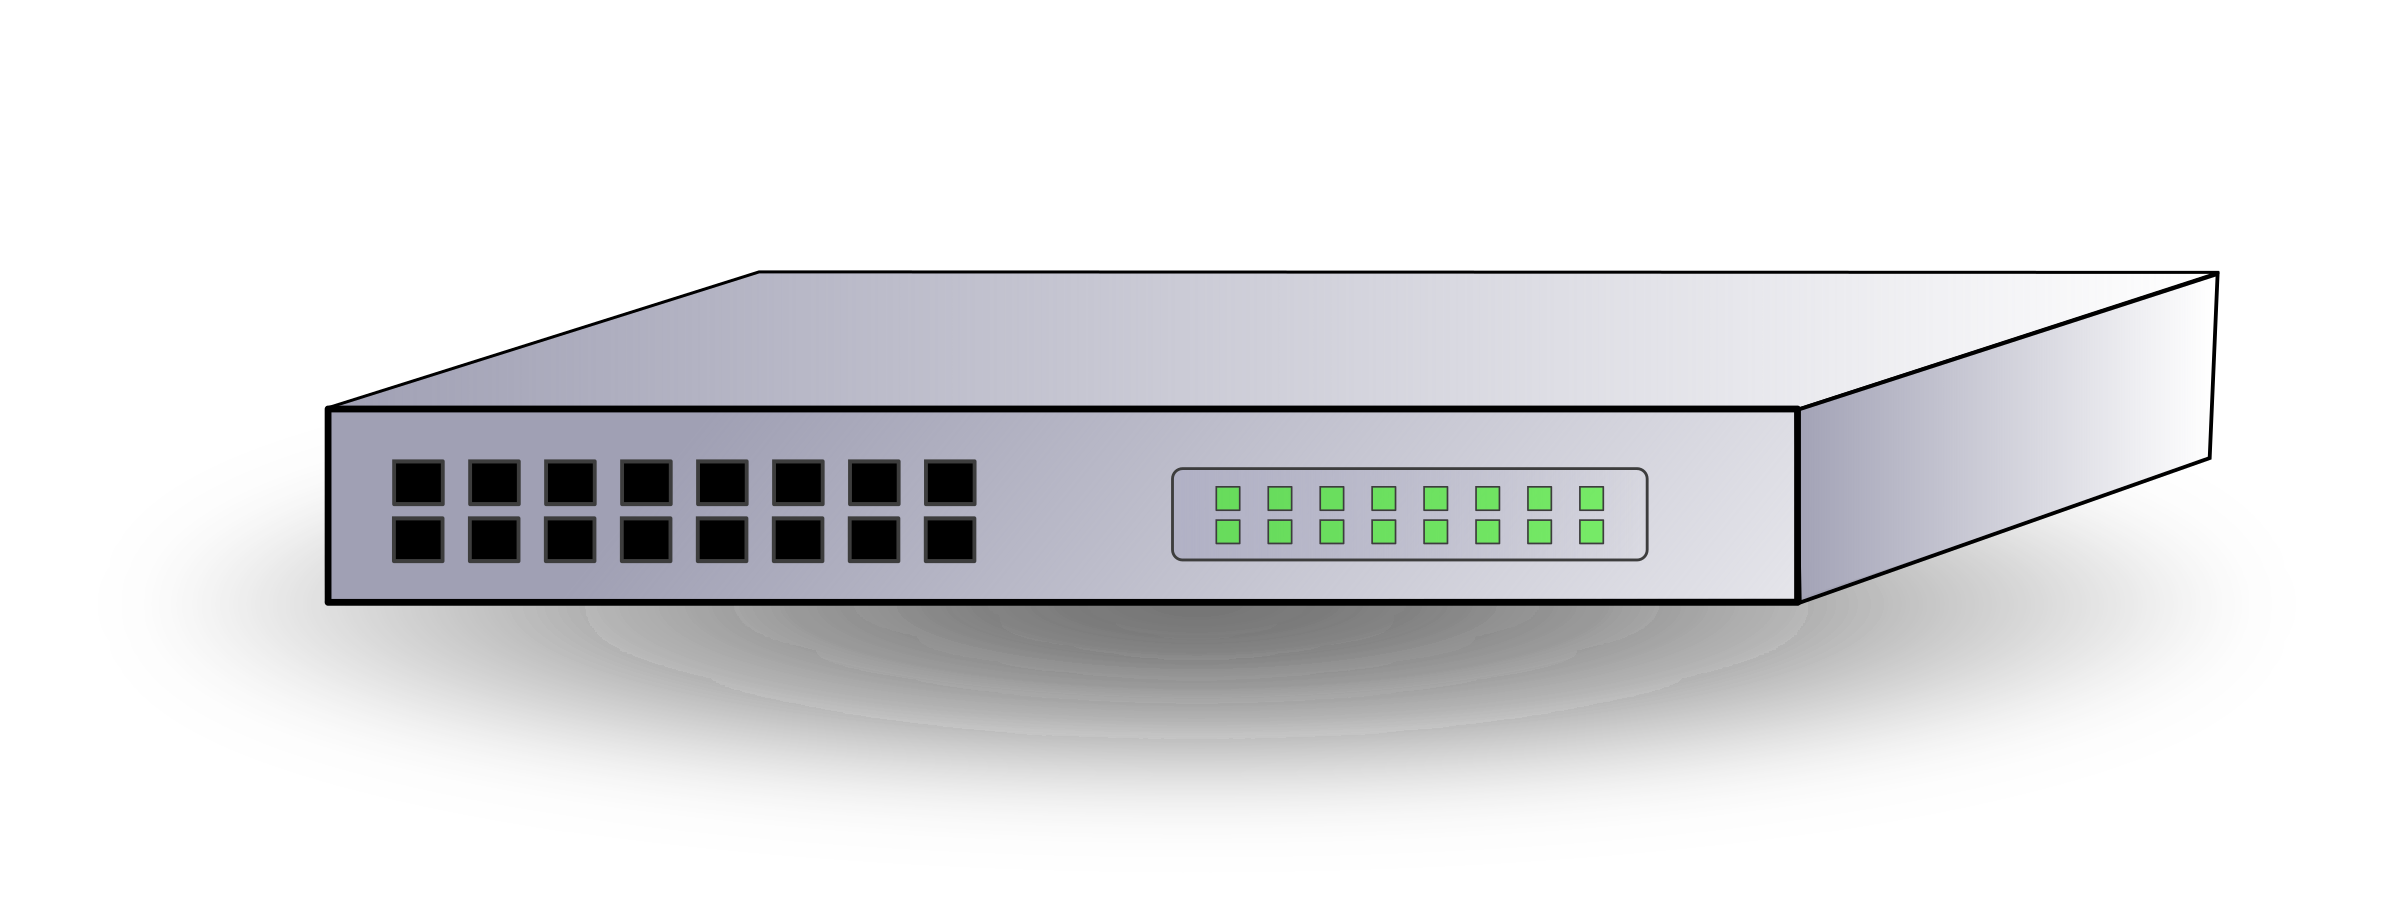 Network Switch by ARTMAN